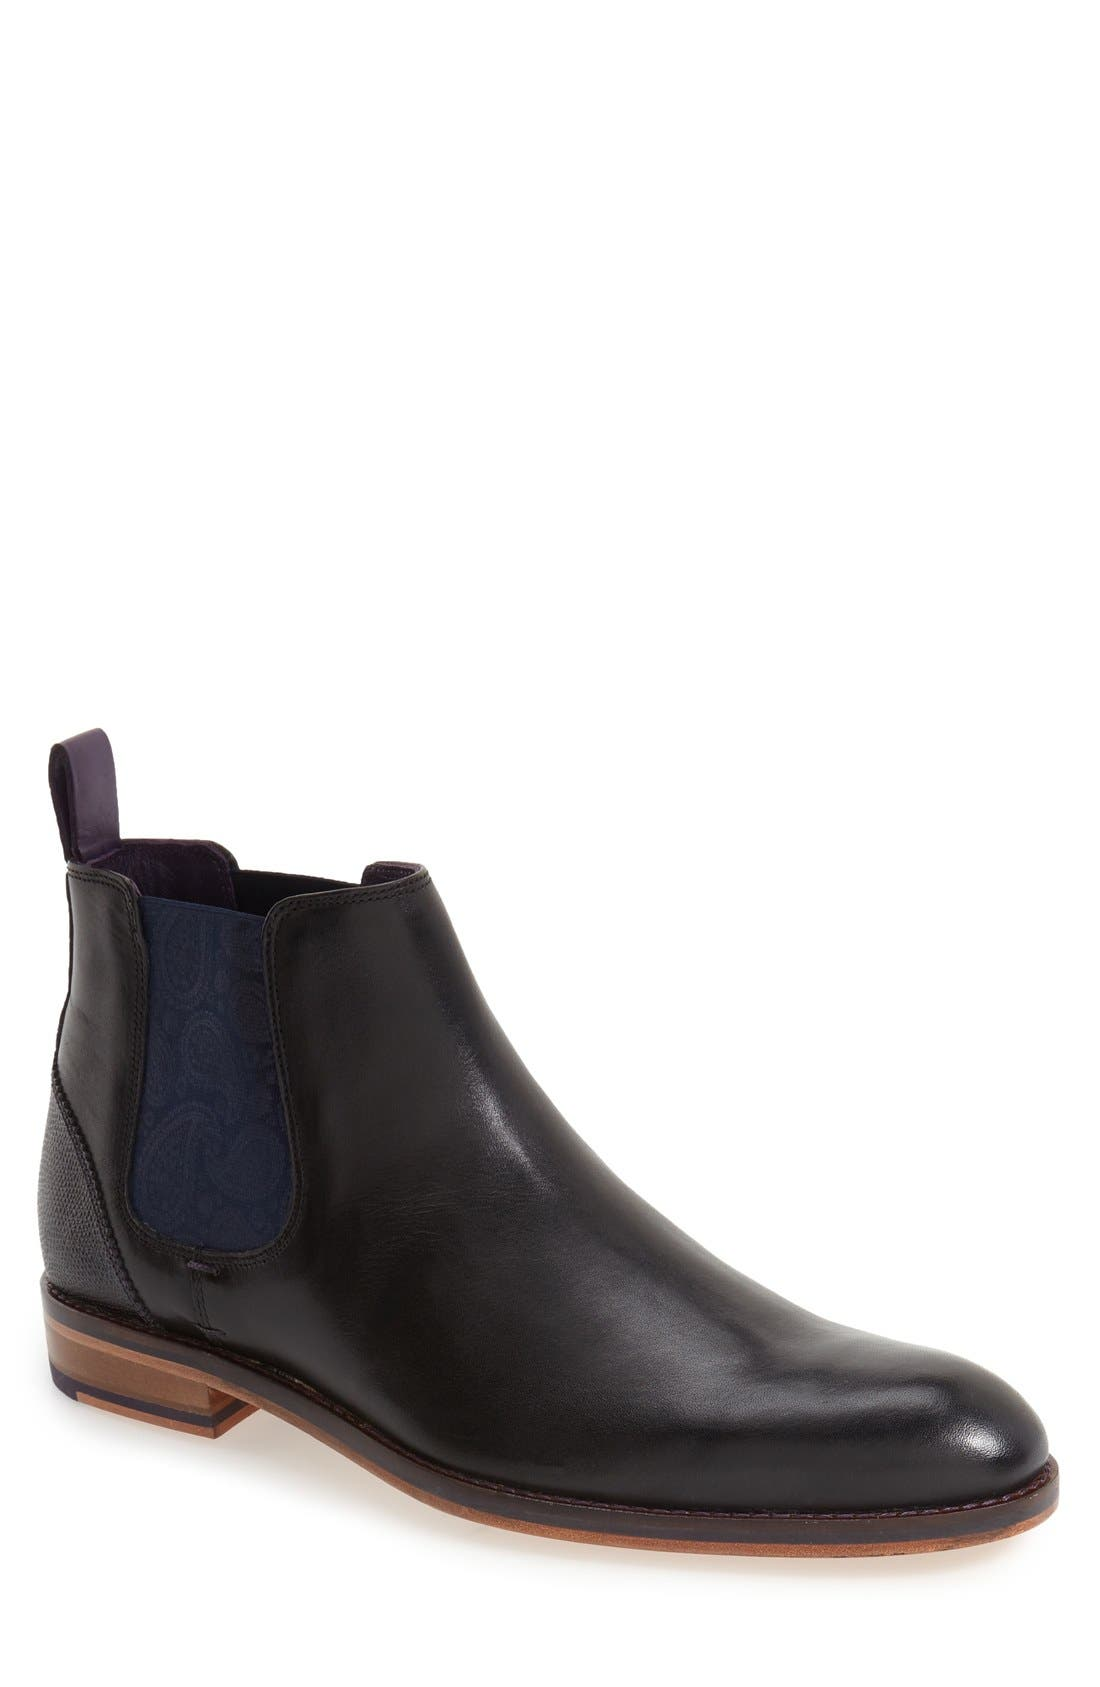 TED BAKER LONDON 'Camroon 4' Chelsea Boot, Main, color, BLACK LEATHER